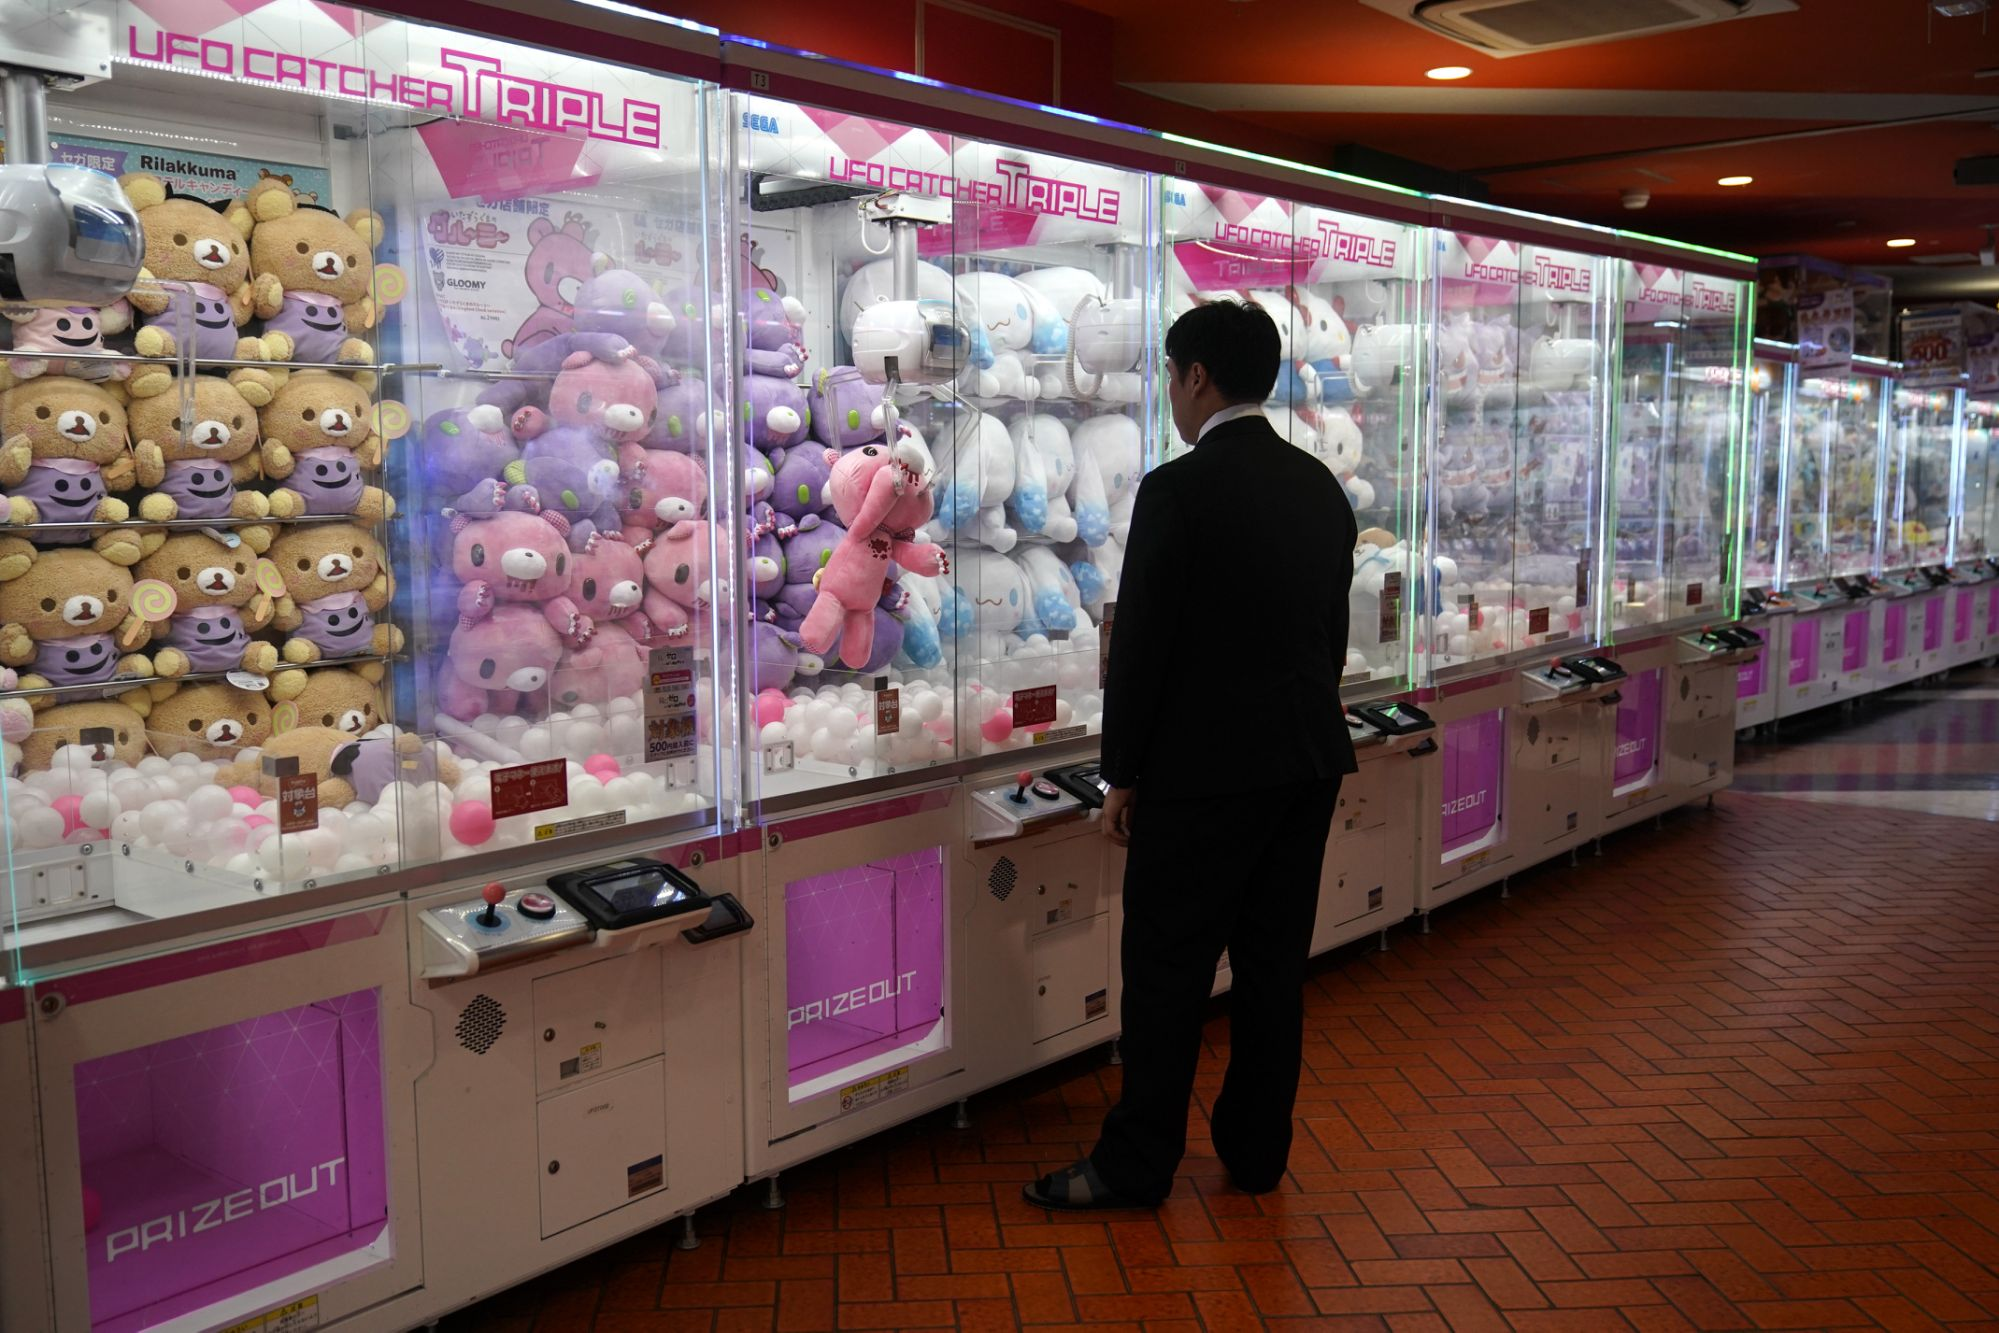 Shinjuku arcade breaks Guinness World Record for having most claw machine games